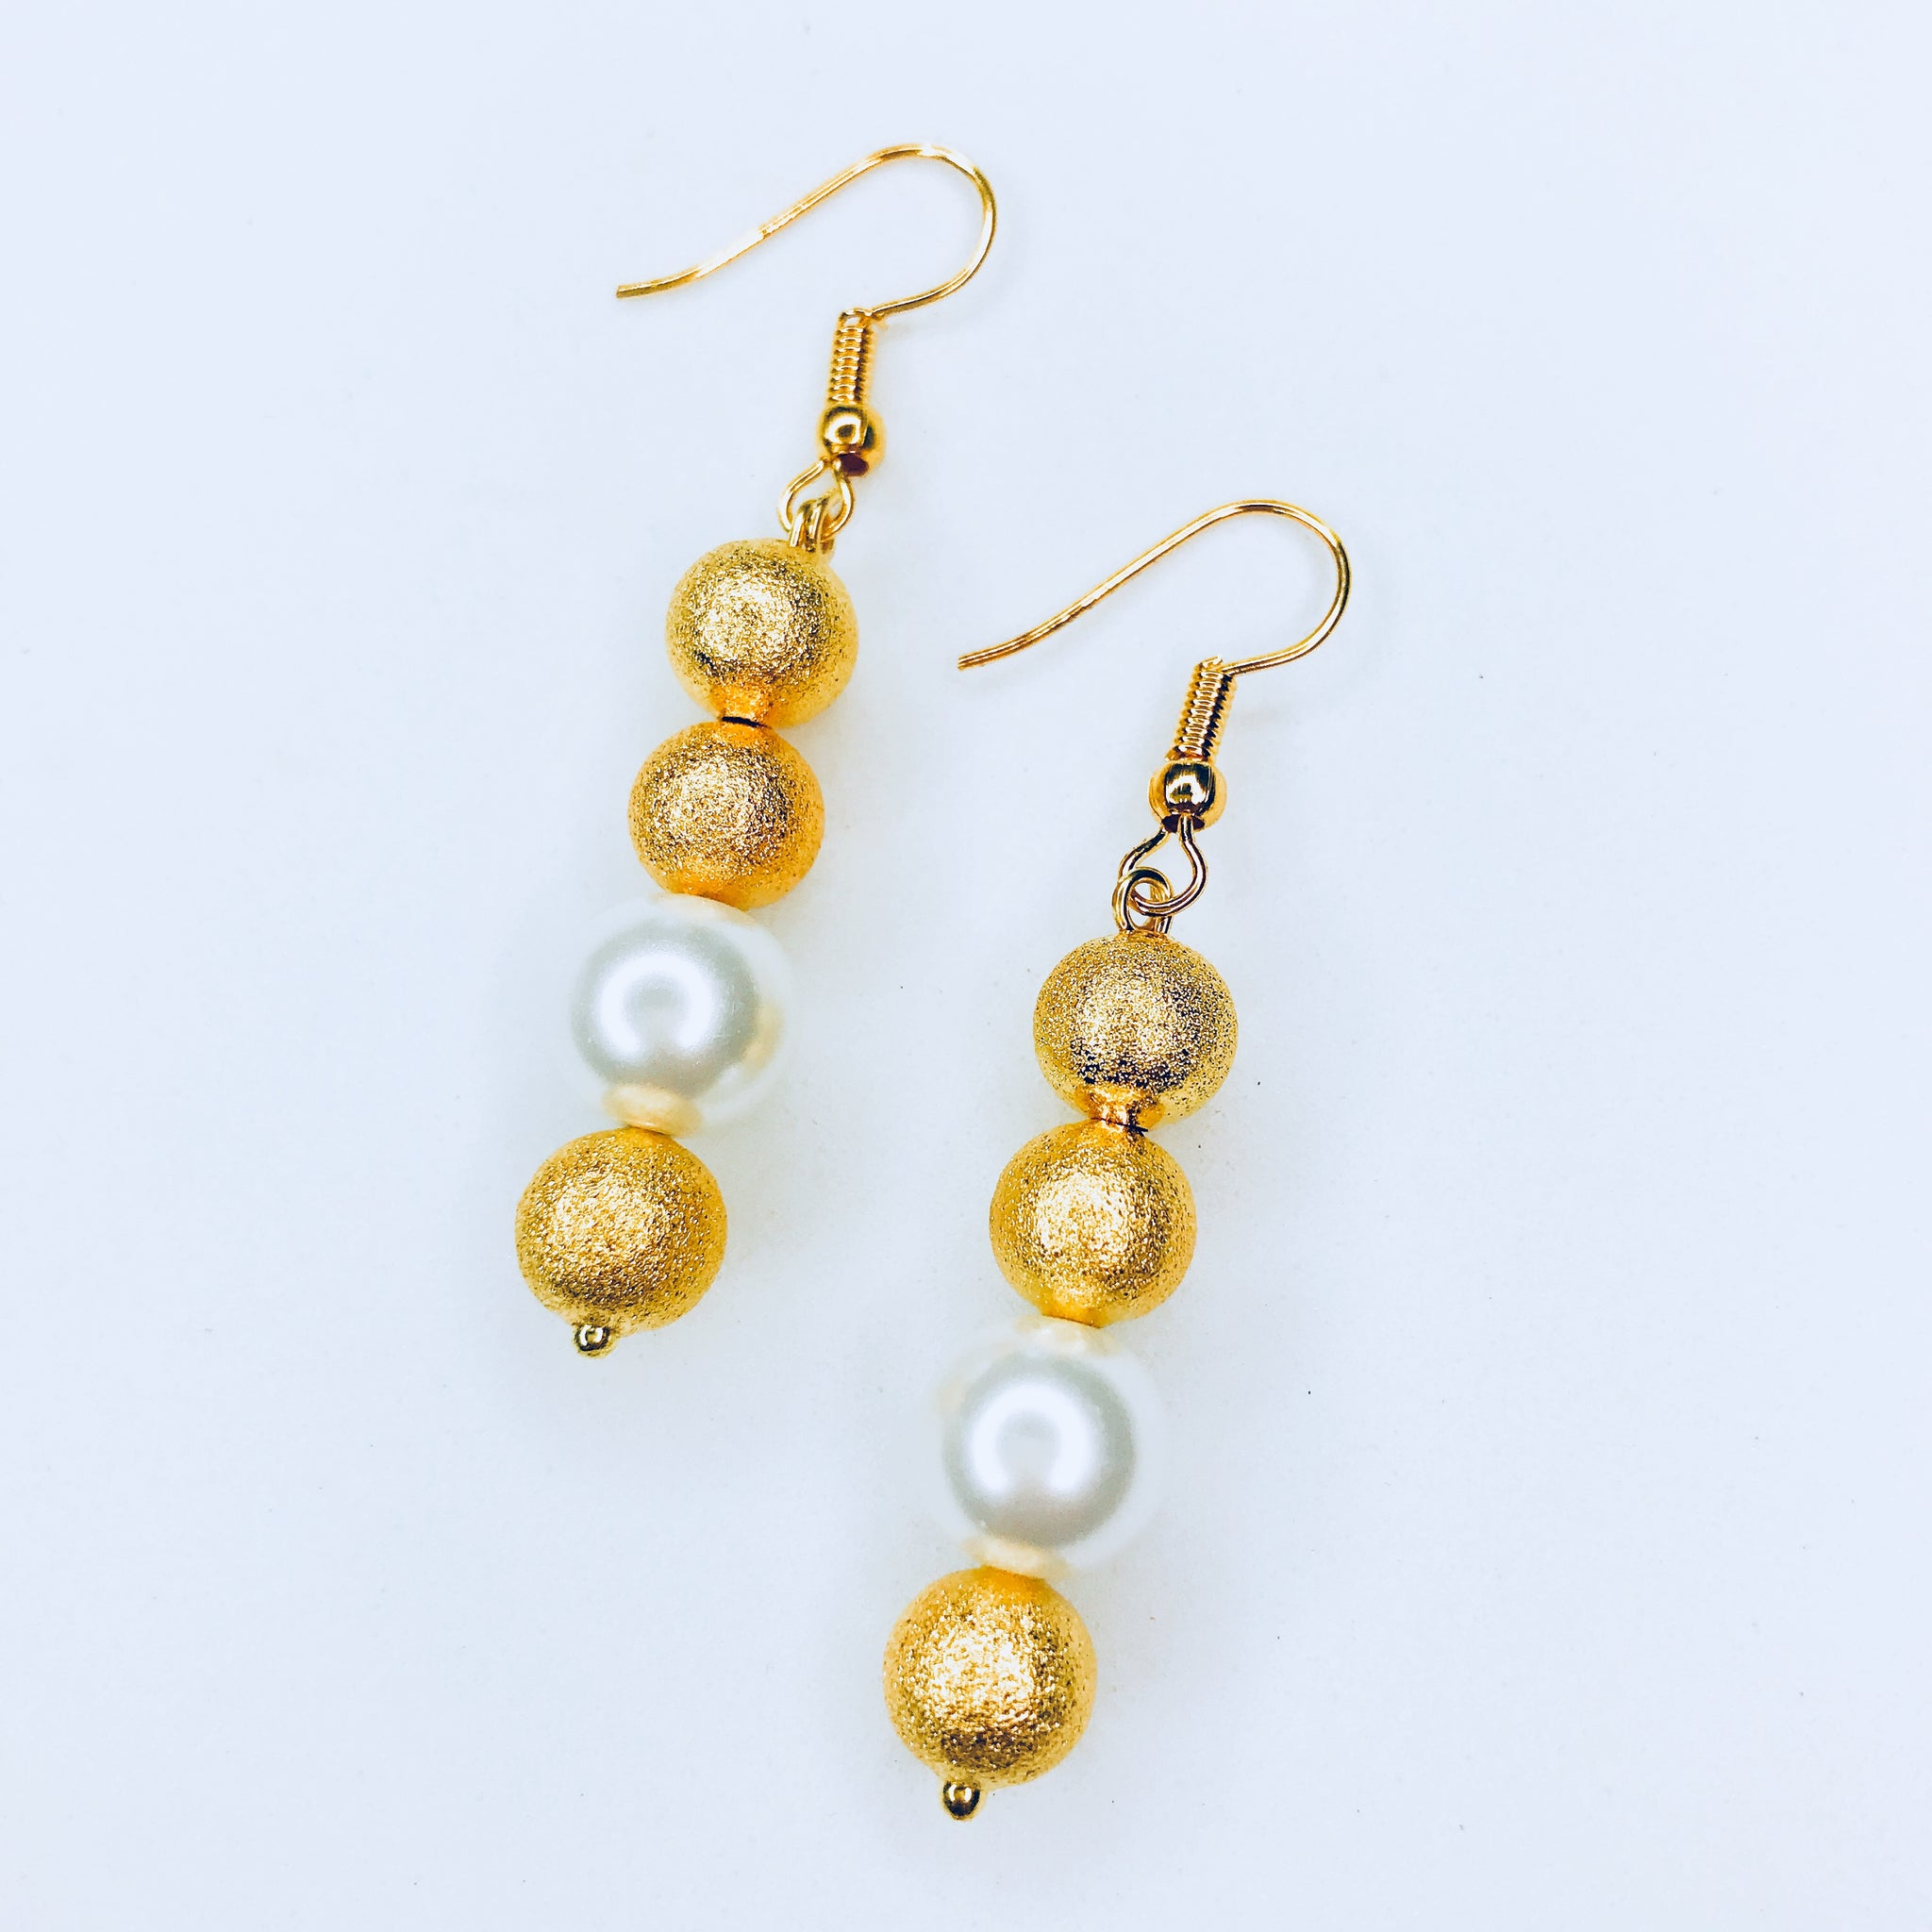 Janina - chic gold and white bead earrings.